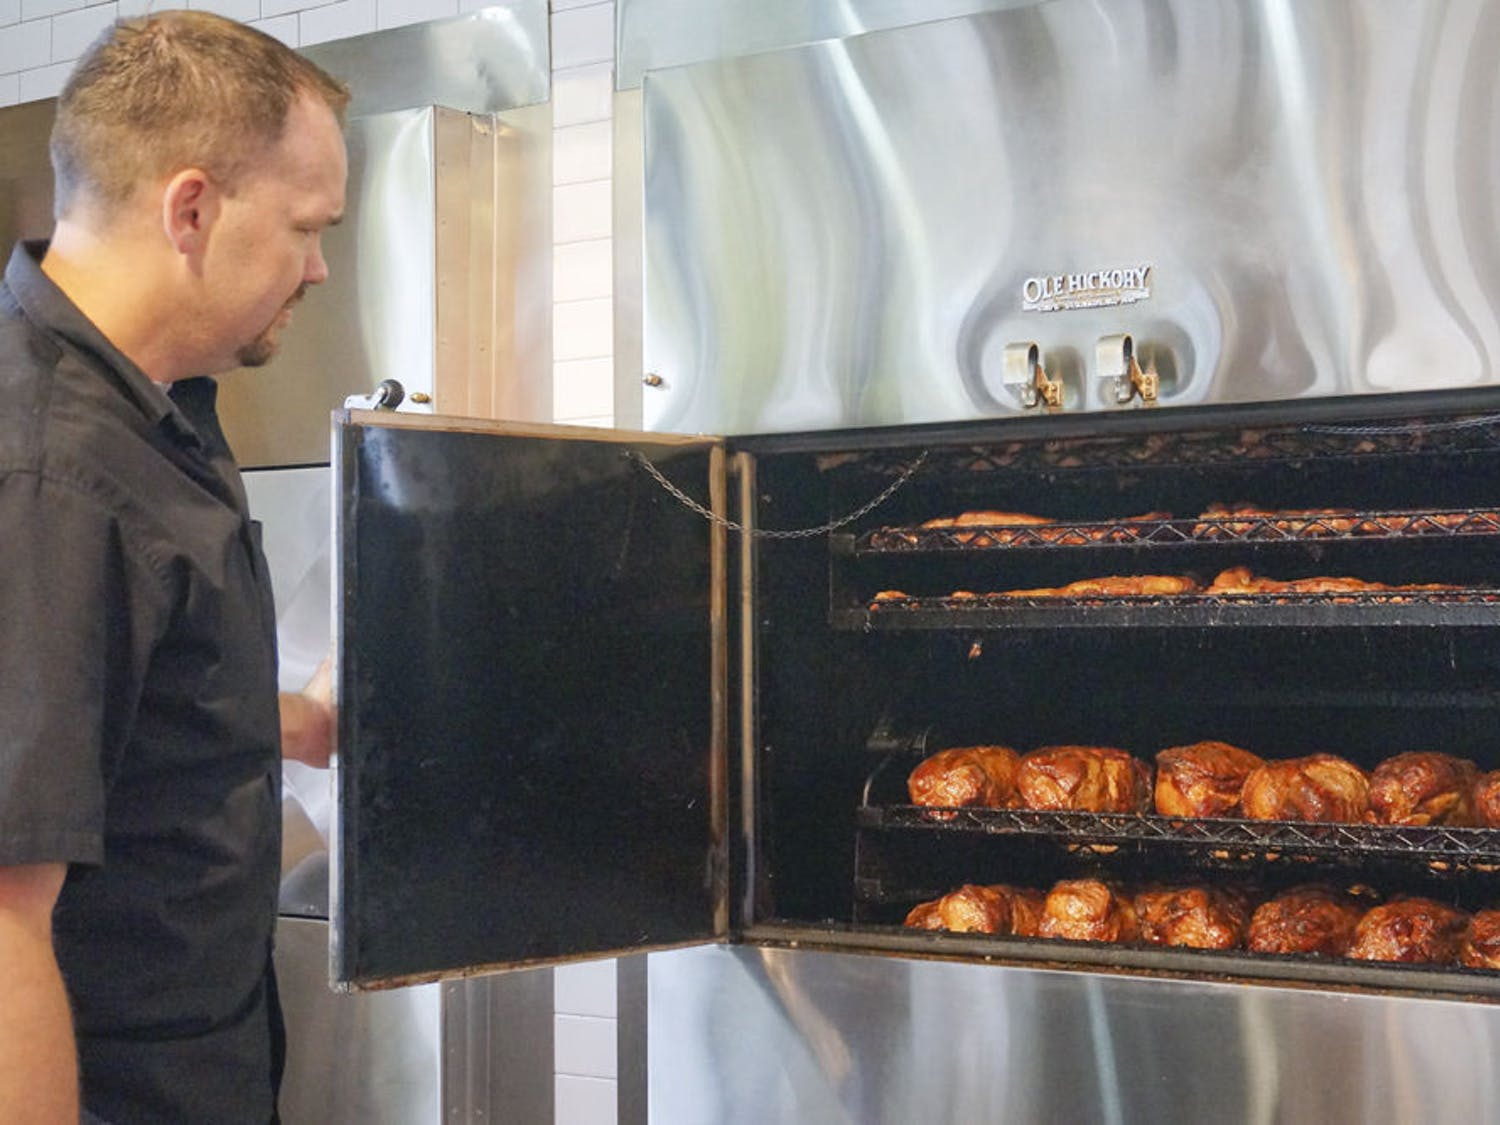 Coy Joyner, assistant general manager, opens one of the barbecue smokers at Sonny's BBQ on 3635 SW Archer Road. The restaurant's new building emphasizes the oak wood smokers, putting them in full view of guests.